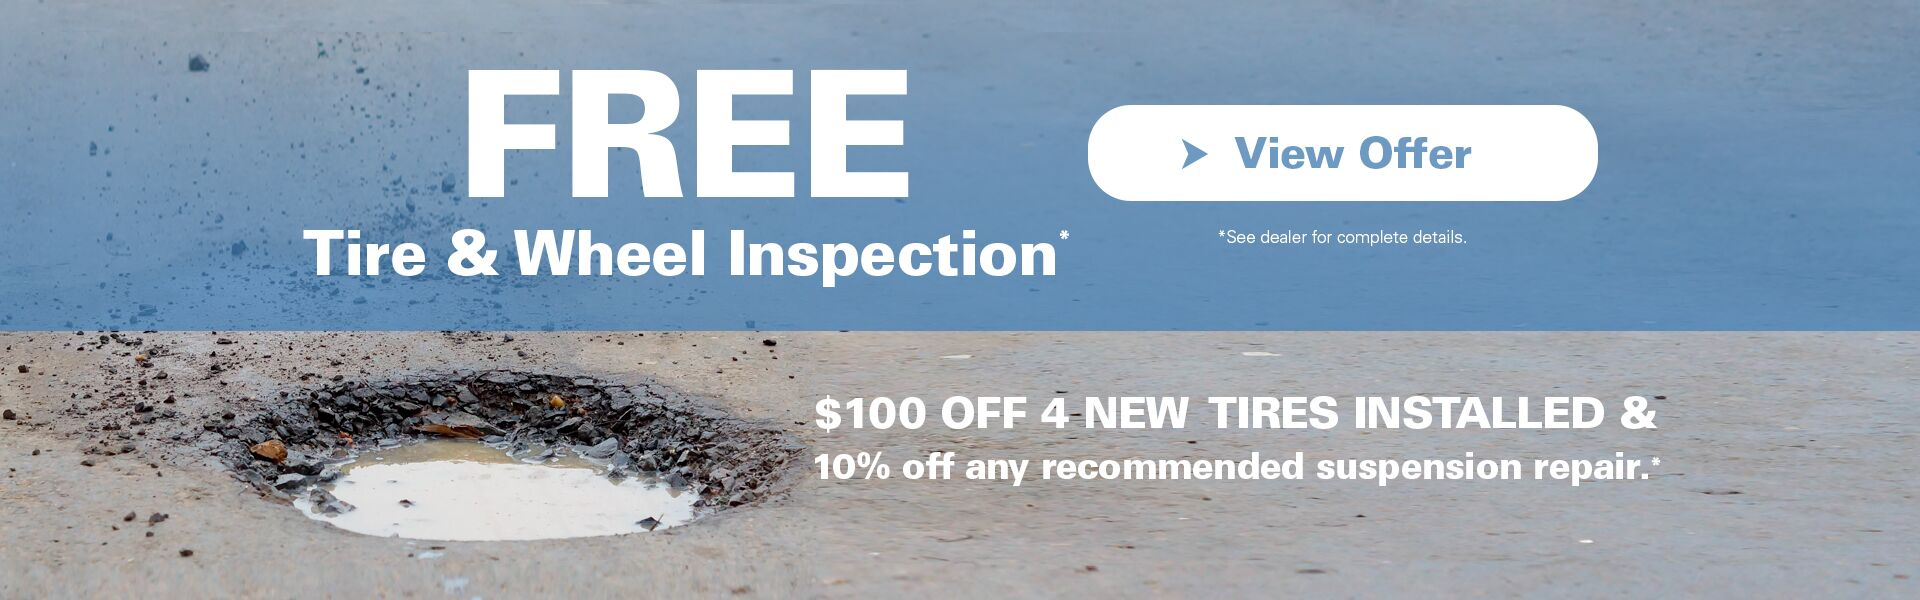 Free Tire & Wheel Inspection